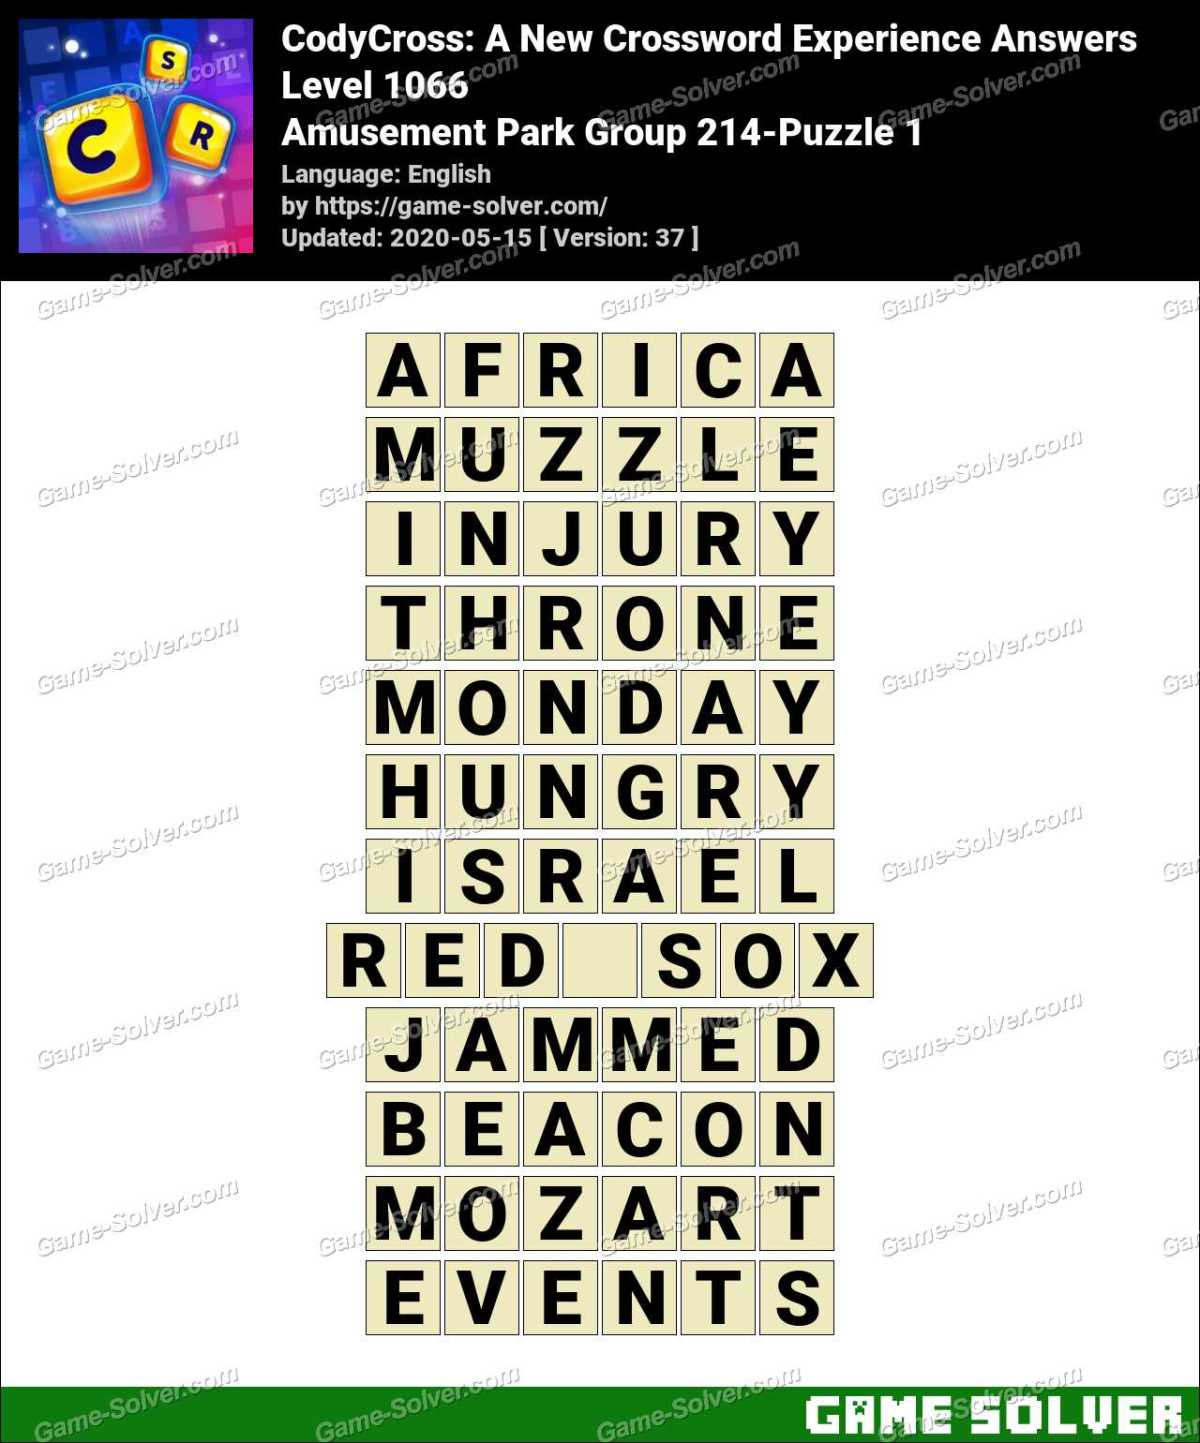 CodyCross Amusement Park Group 214-Puzzle 1 Answers